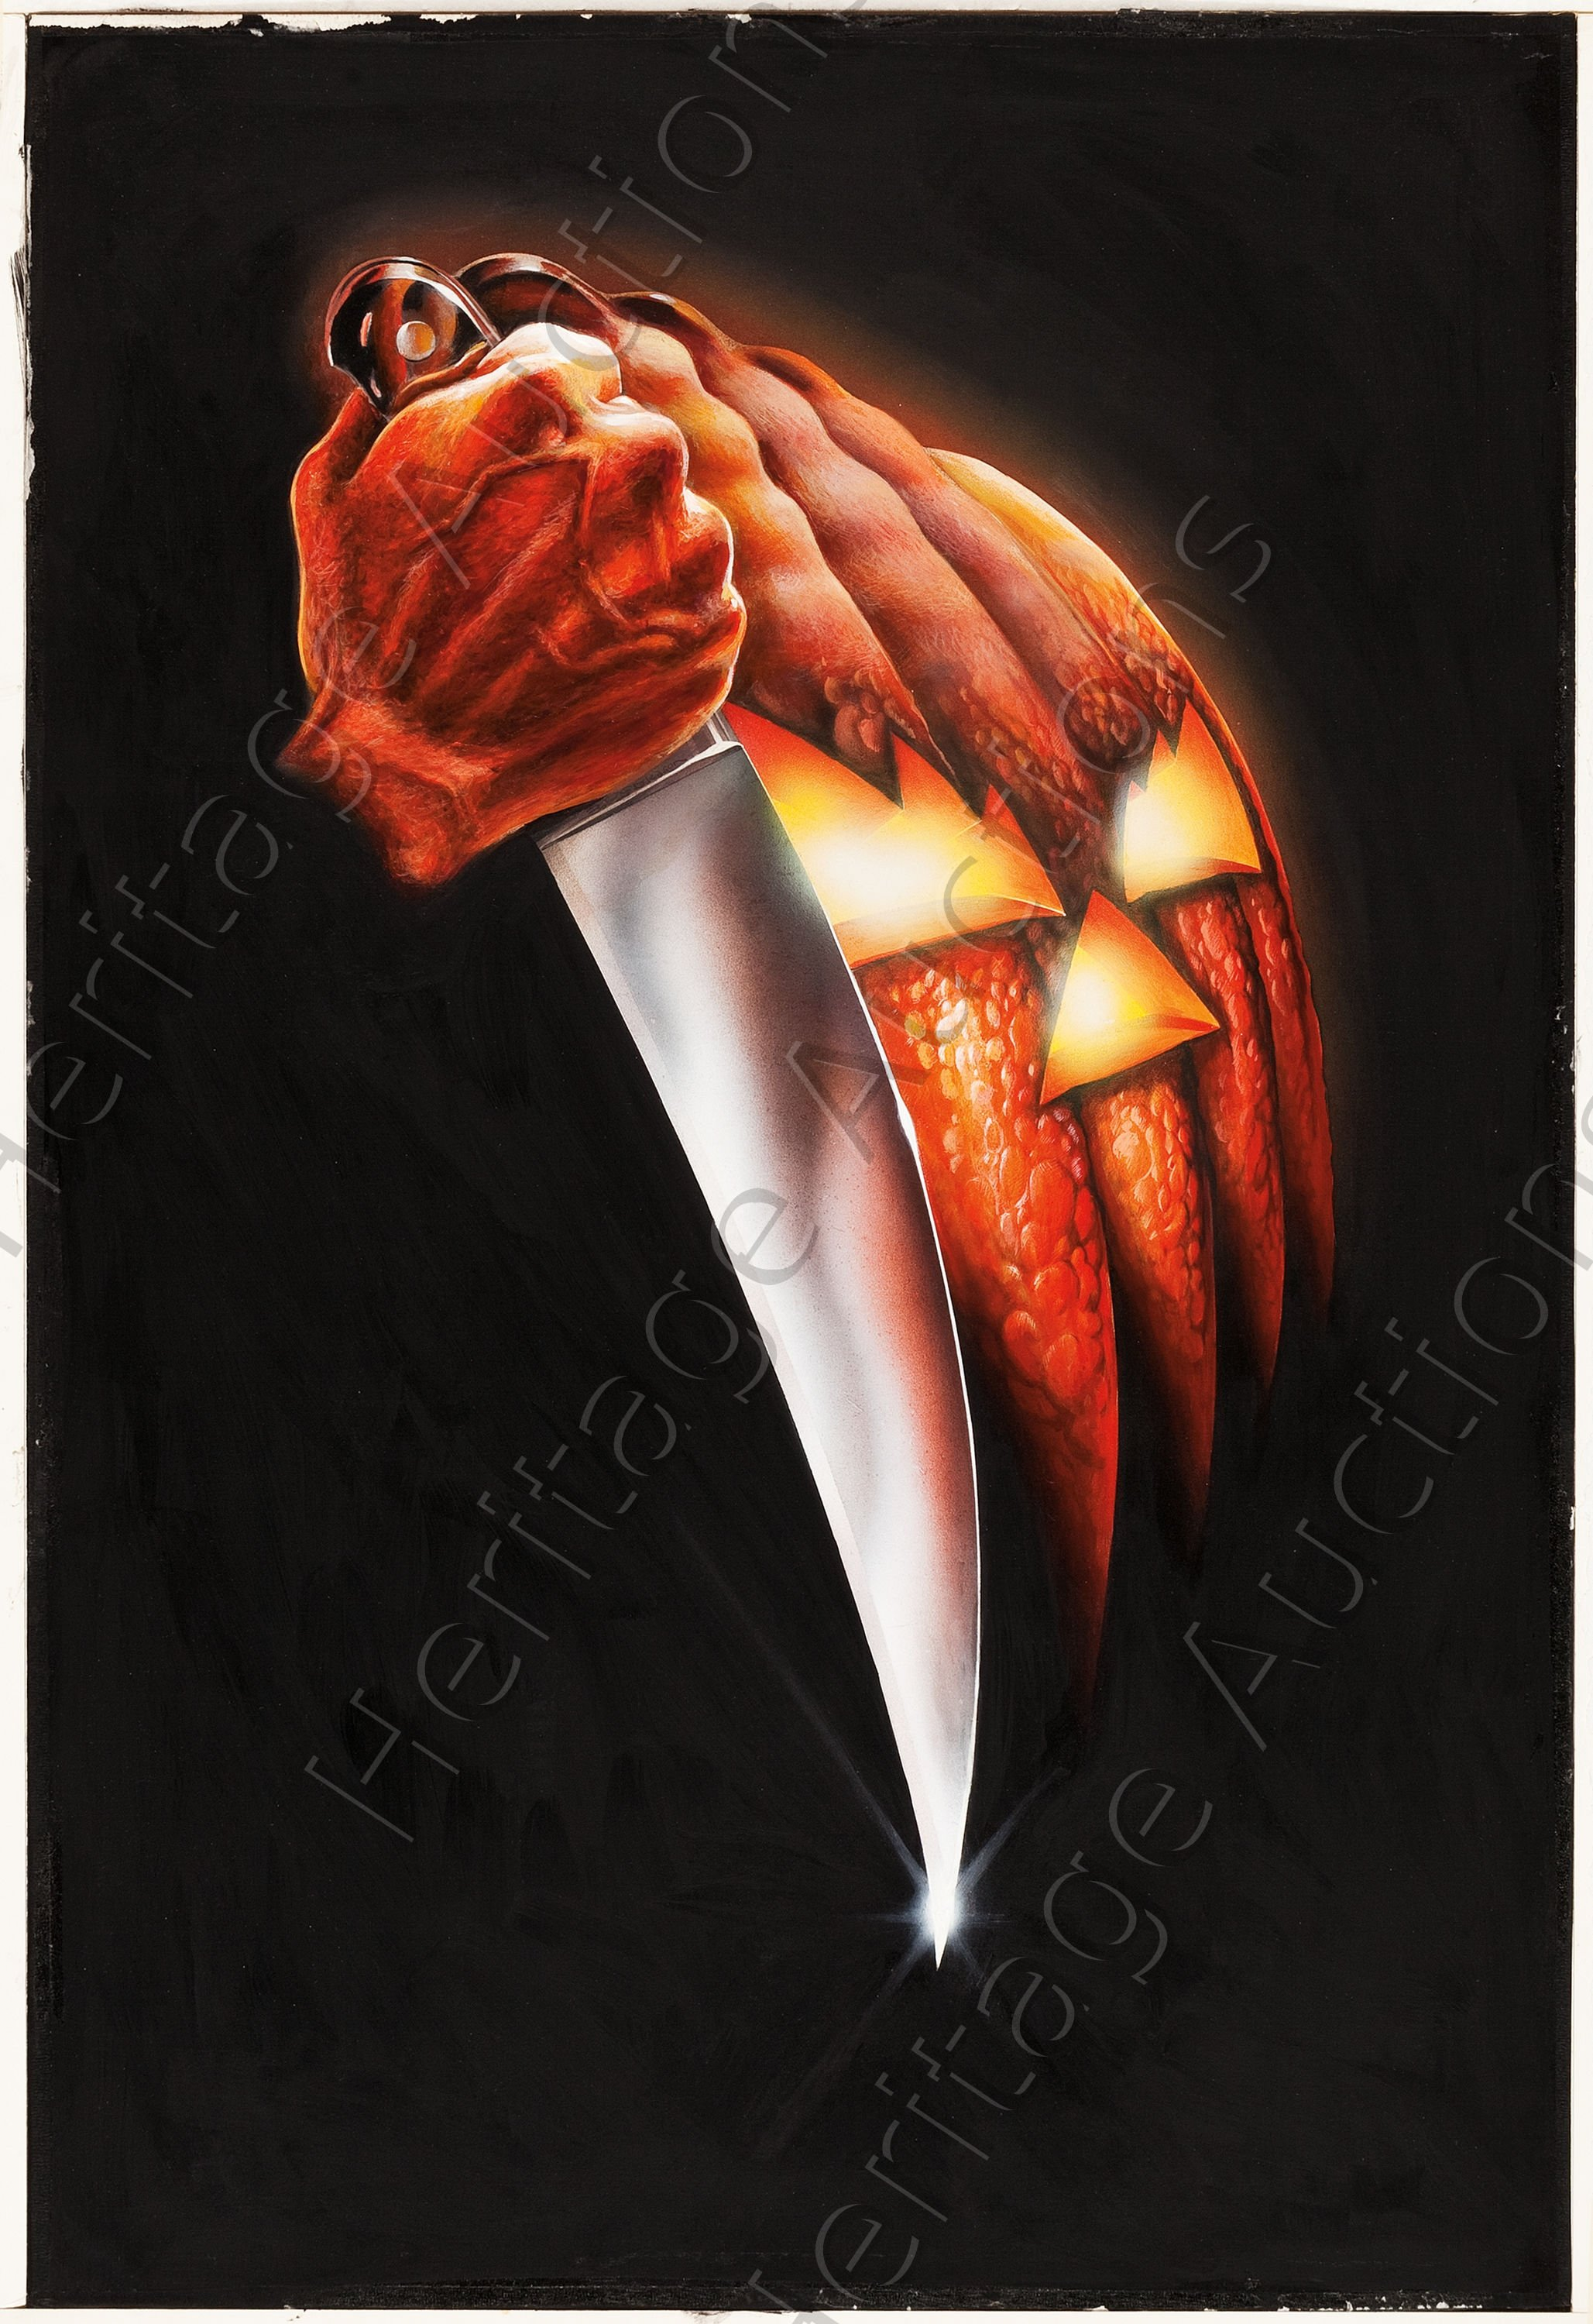 Halloween 1978 Movie Poster.Original Poster Art From Carpenter S Halloween Up For